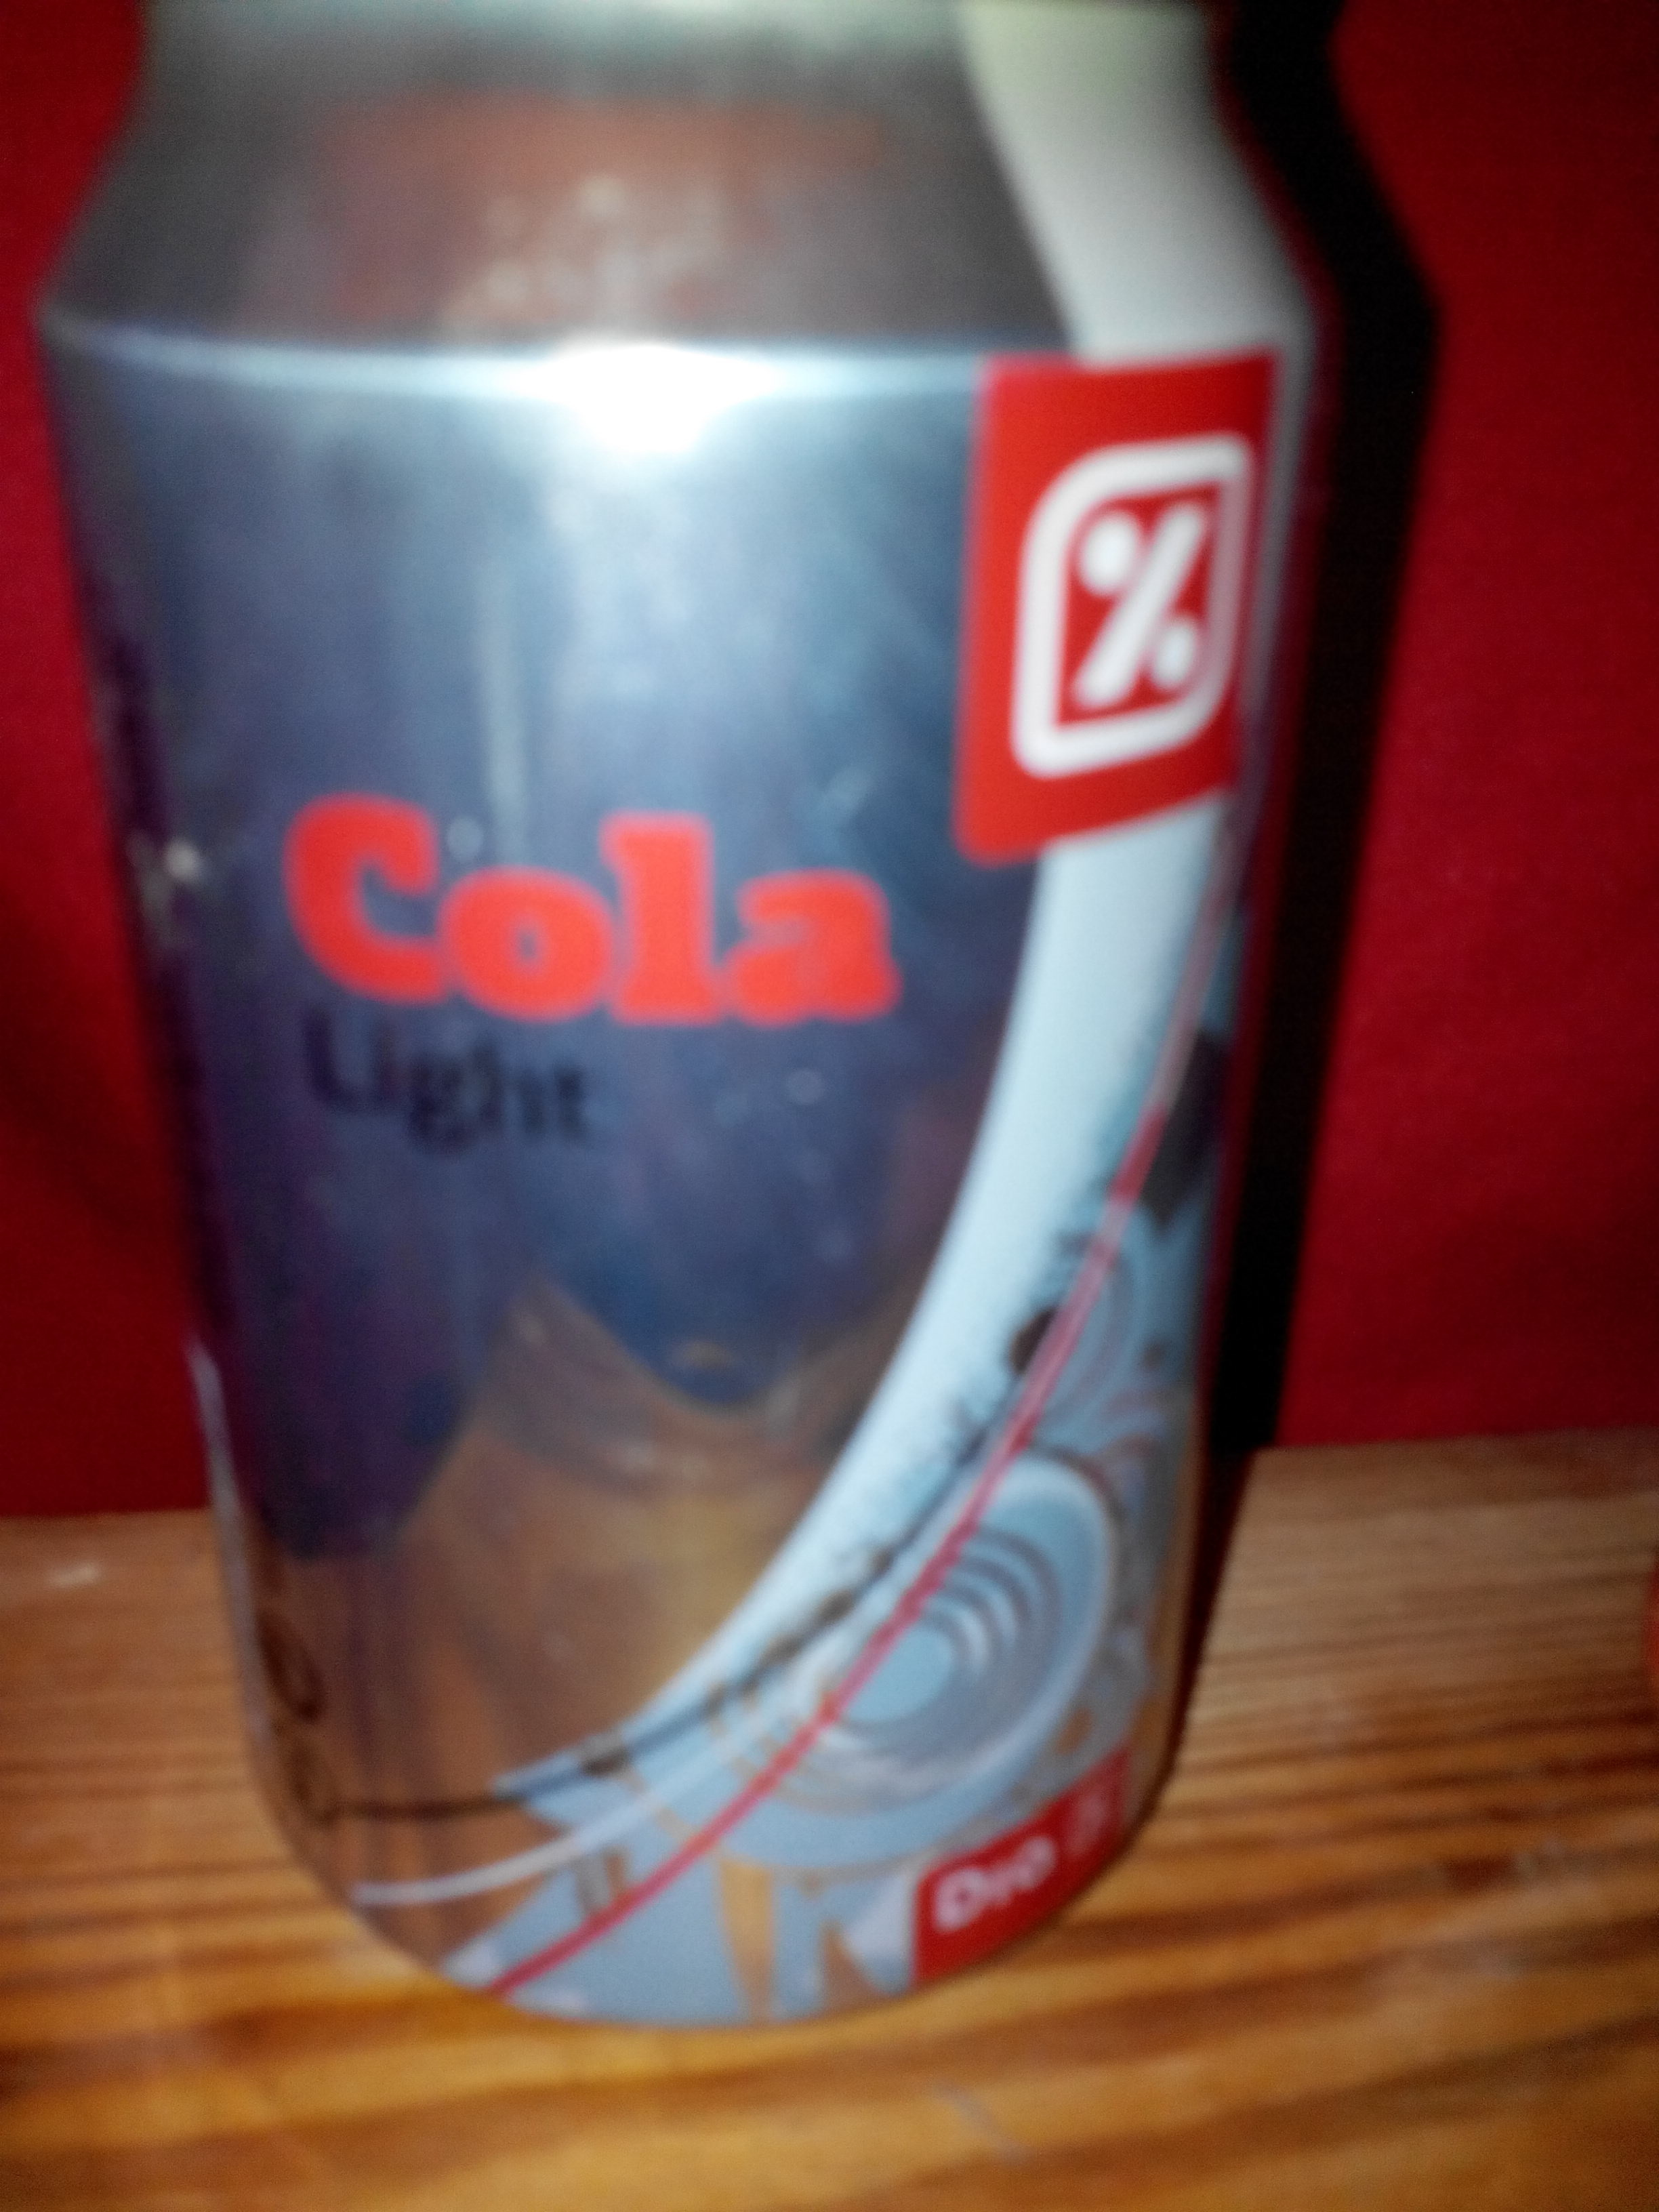 cola light - Product